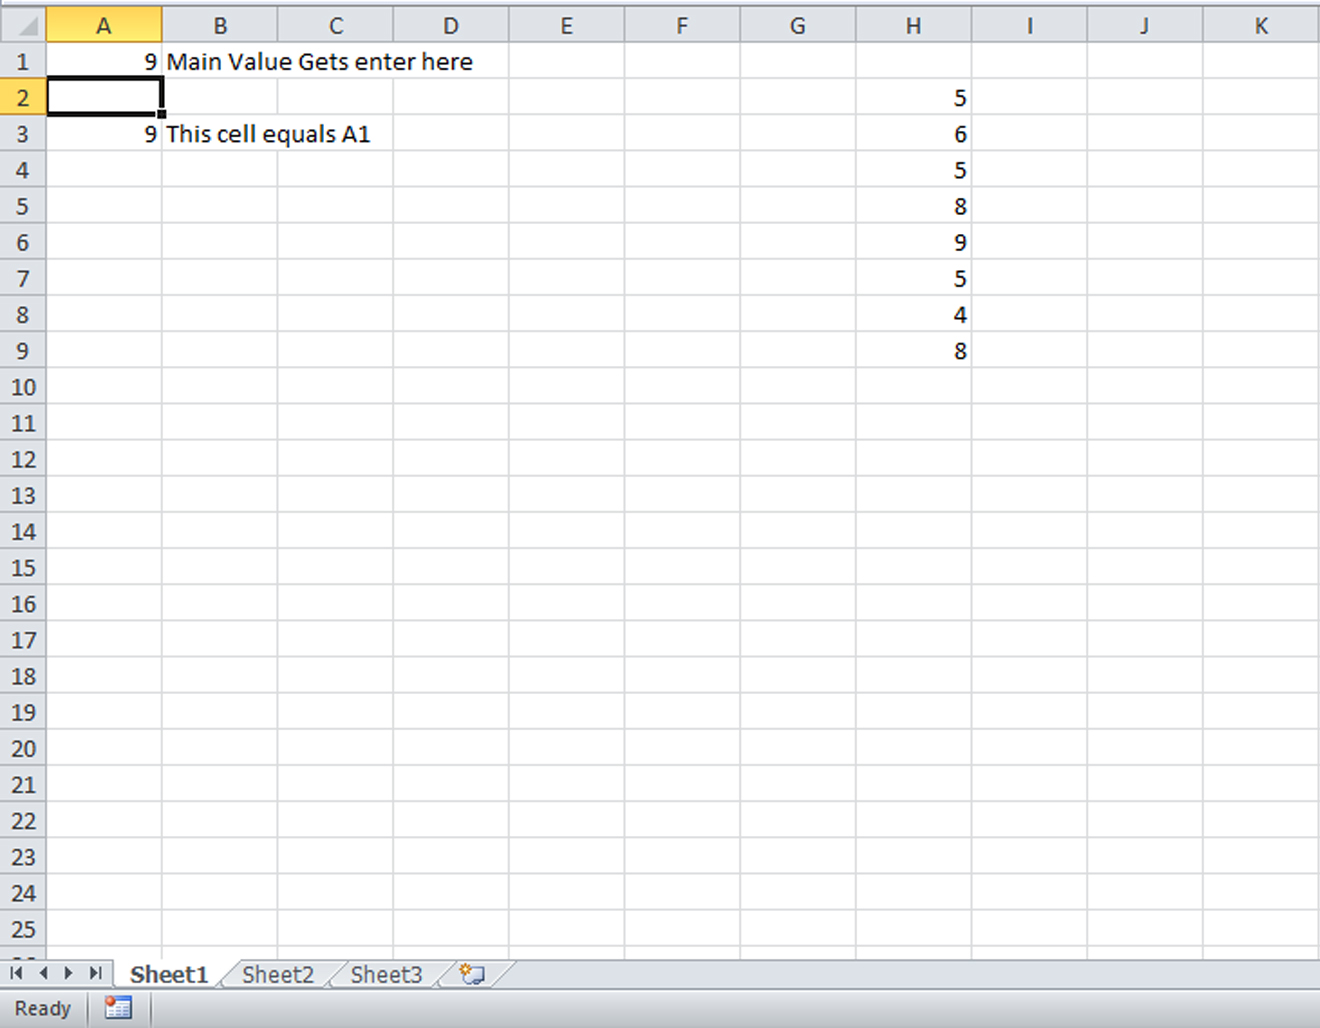 Excel Vba Byval Target As Range Does Not Update Target Worksheet When Excuting From A Function